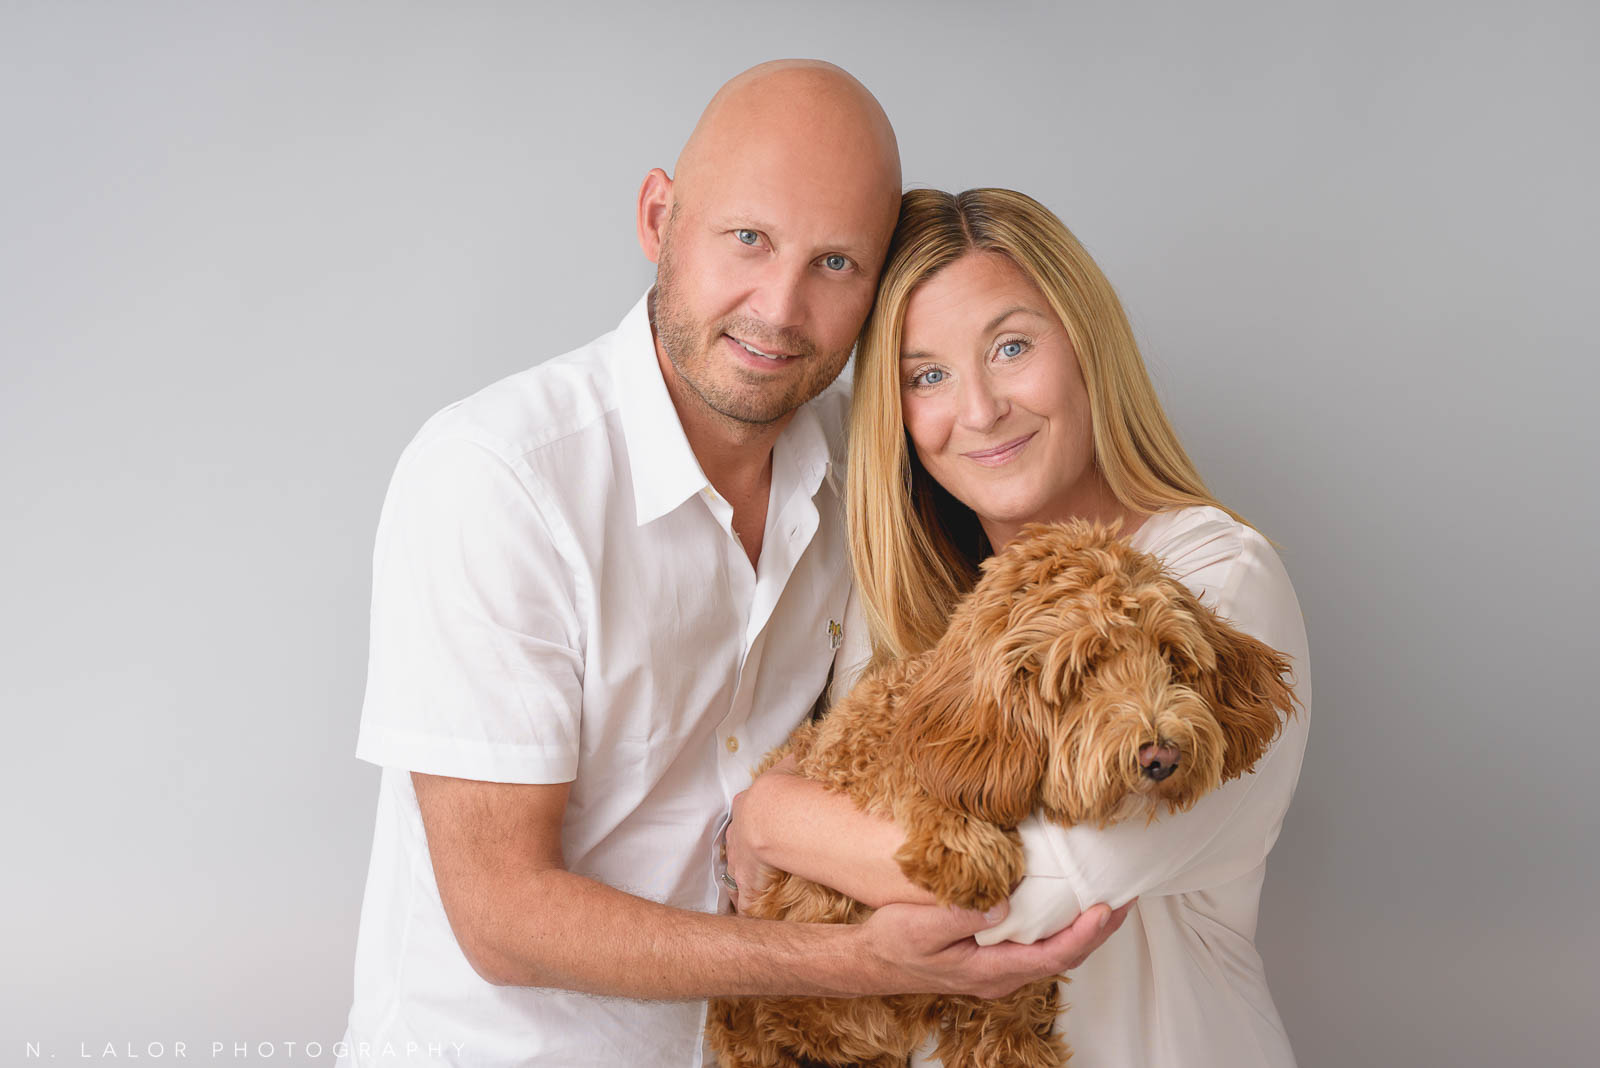 Family Portrait of woman, man and dog. N. Lalor Photography. Photographer Studio in Greenwich, Connecticut